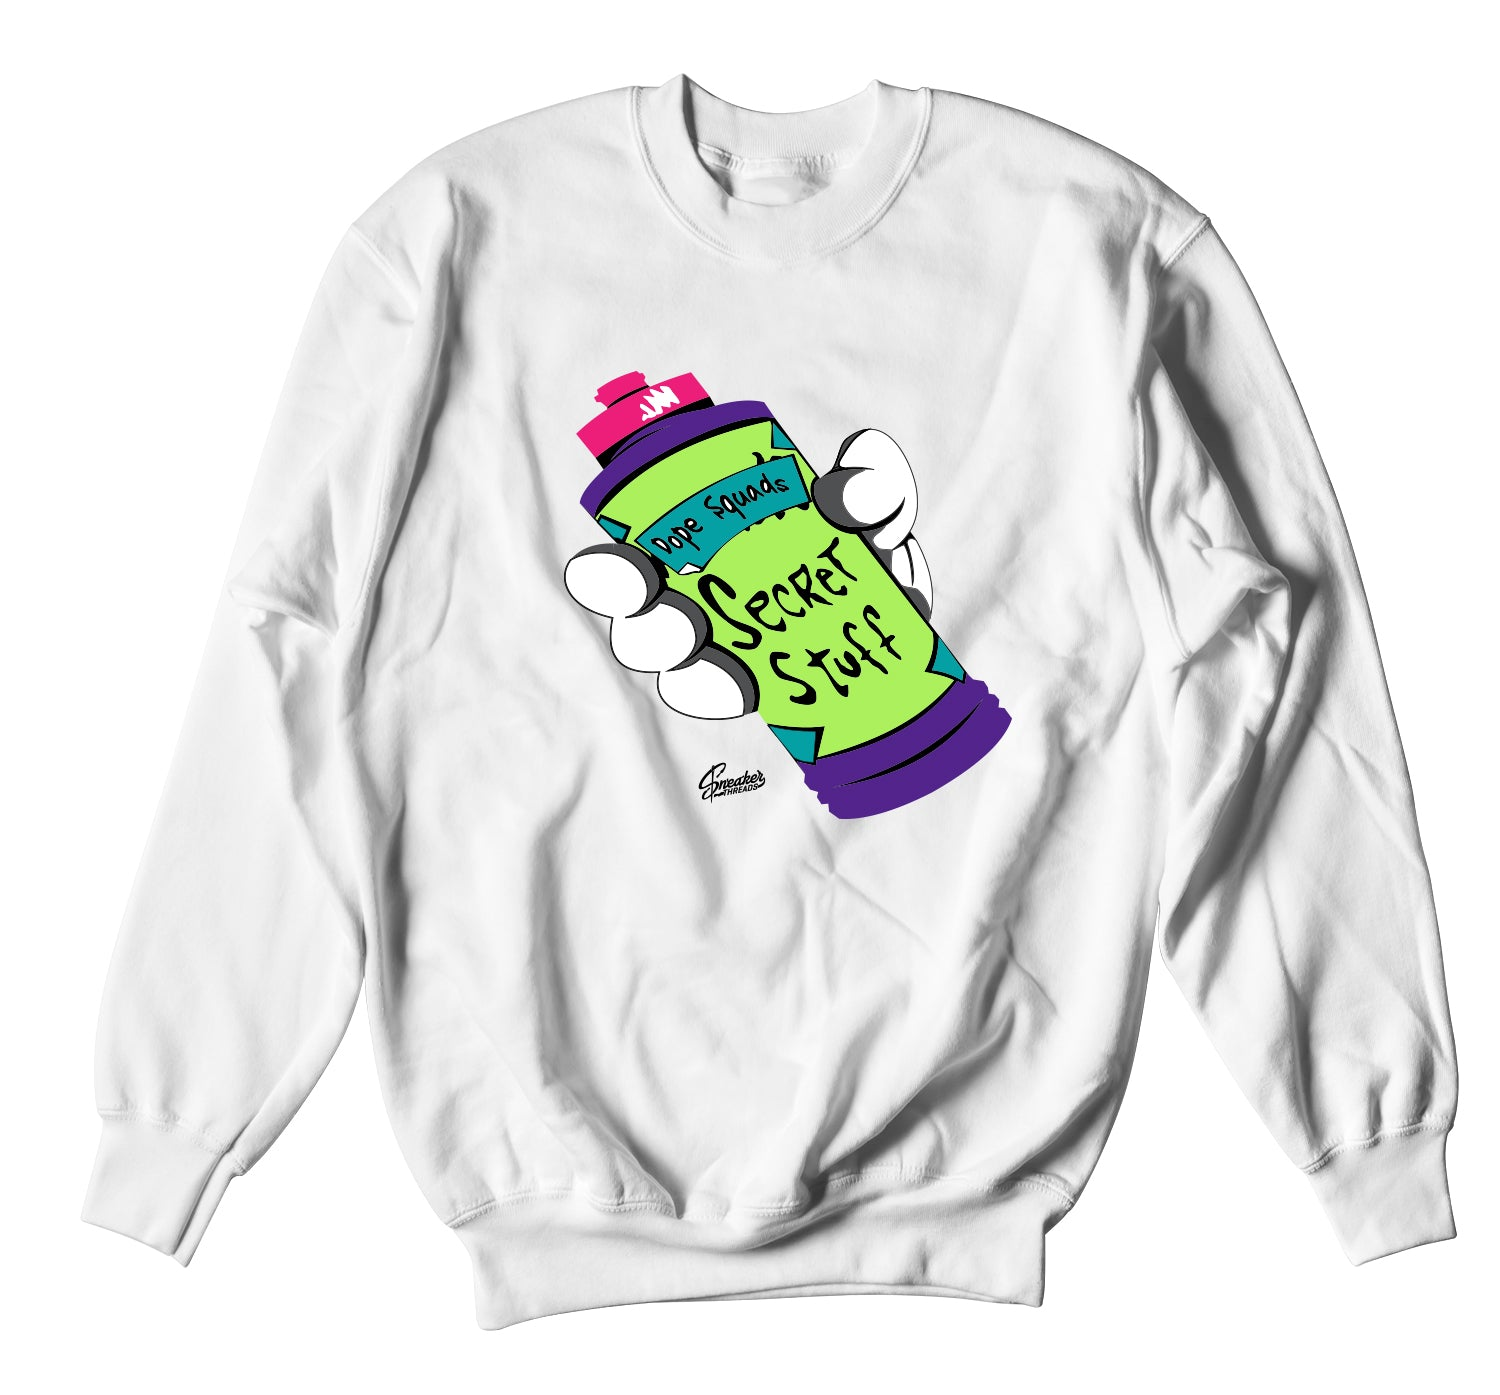 All Star 2020 Swackhammer Sweater  - Secret Stuff - White